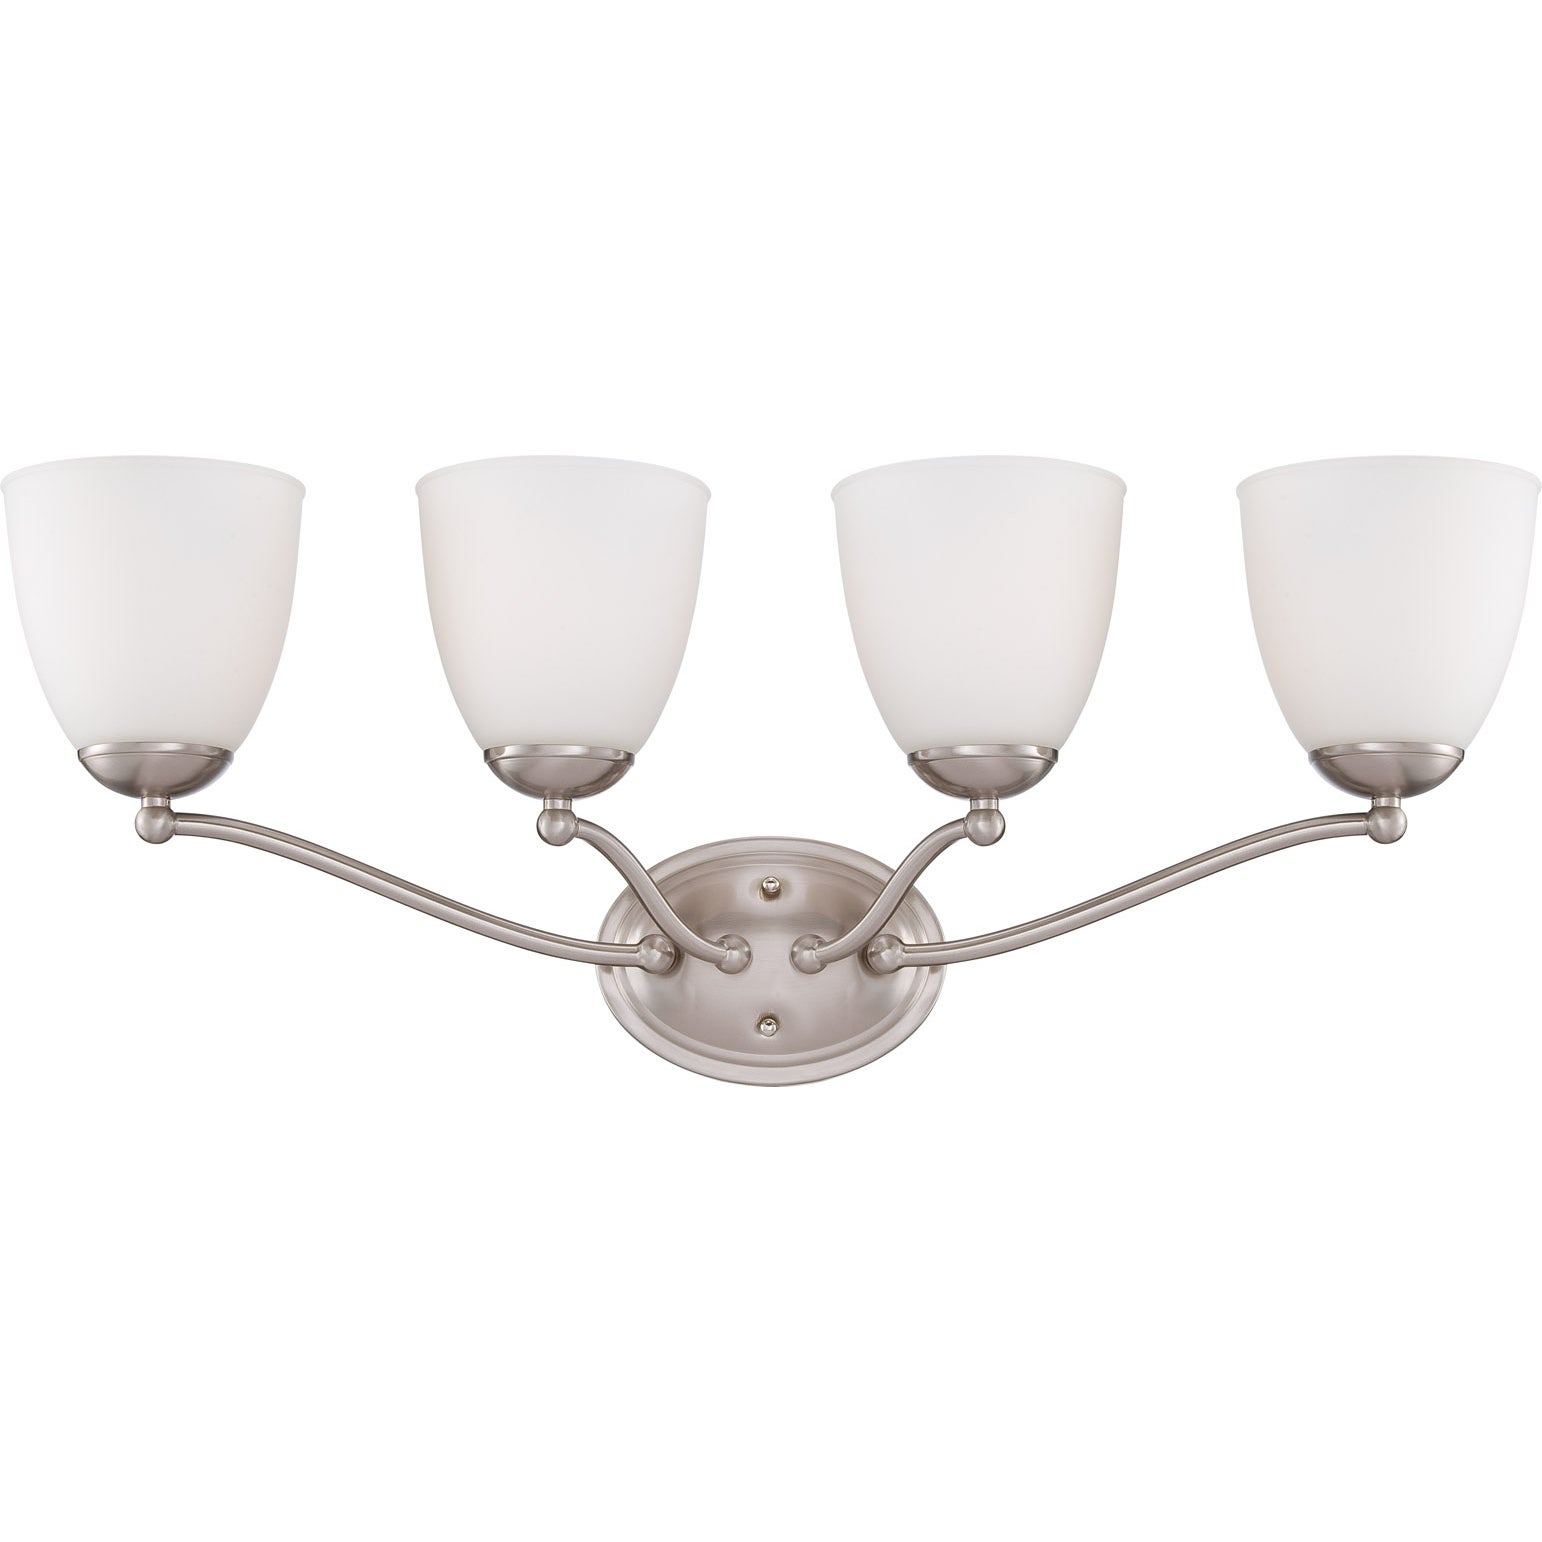 Nuvo 'Patton' 4-light Brushed Nickel Vanity Fixture